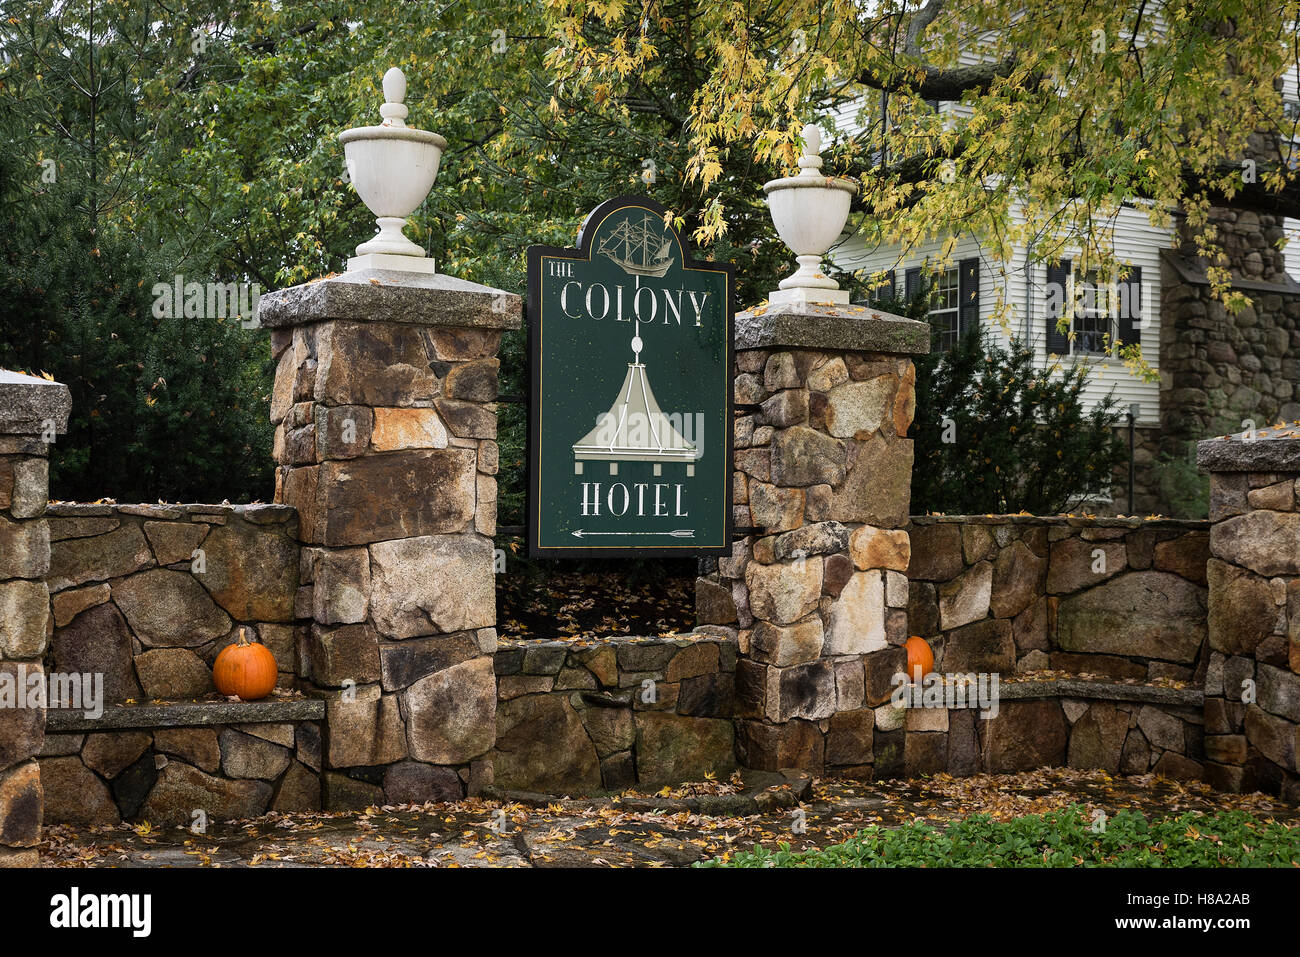 The Colony Resort Hotel, Kennebunkport, Maine, USA. - Stock Image